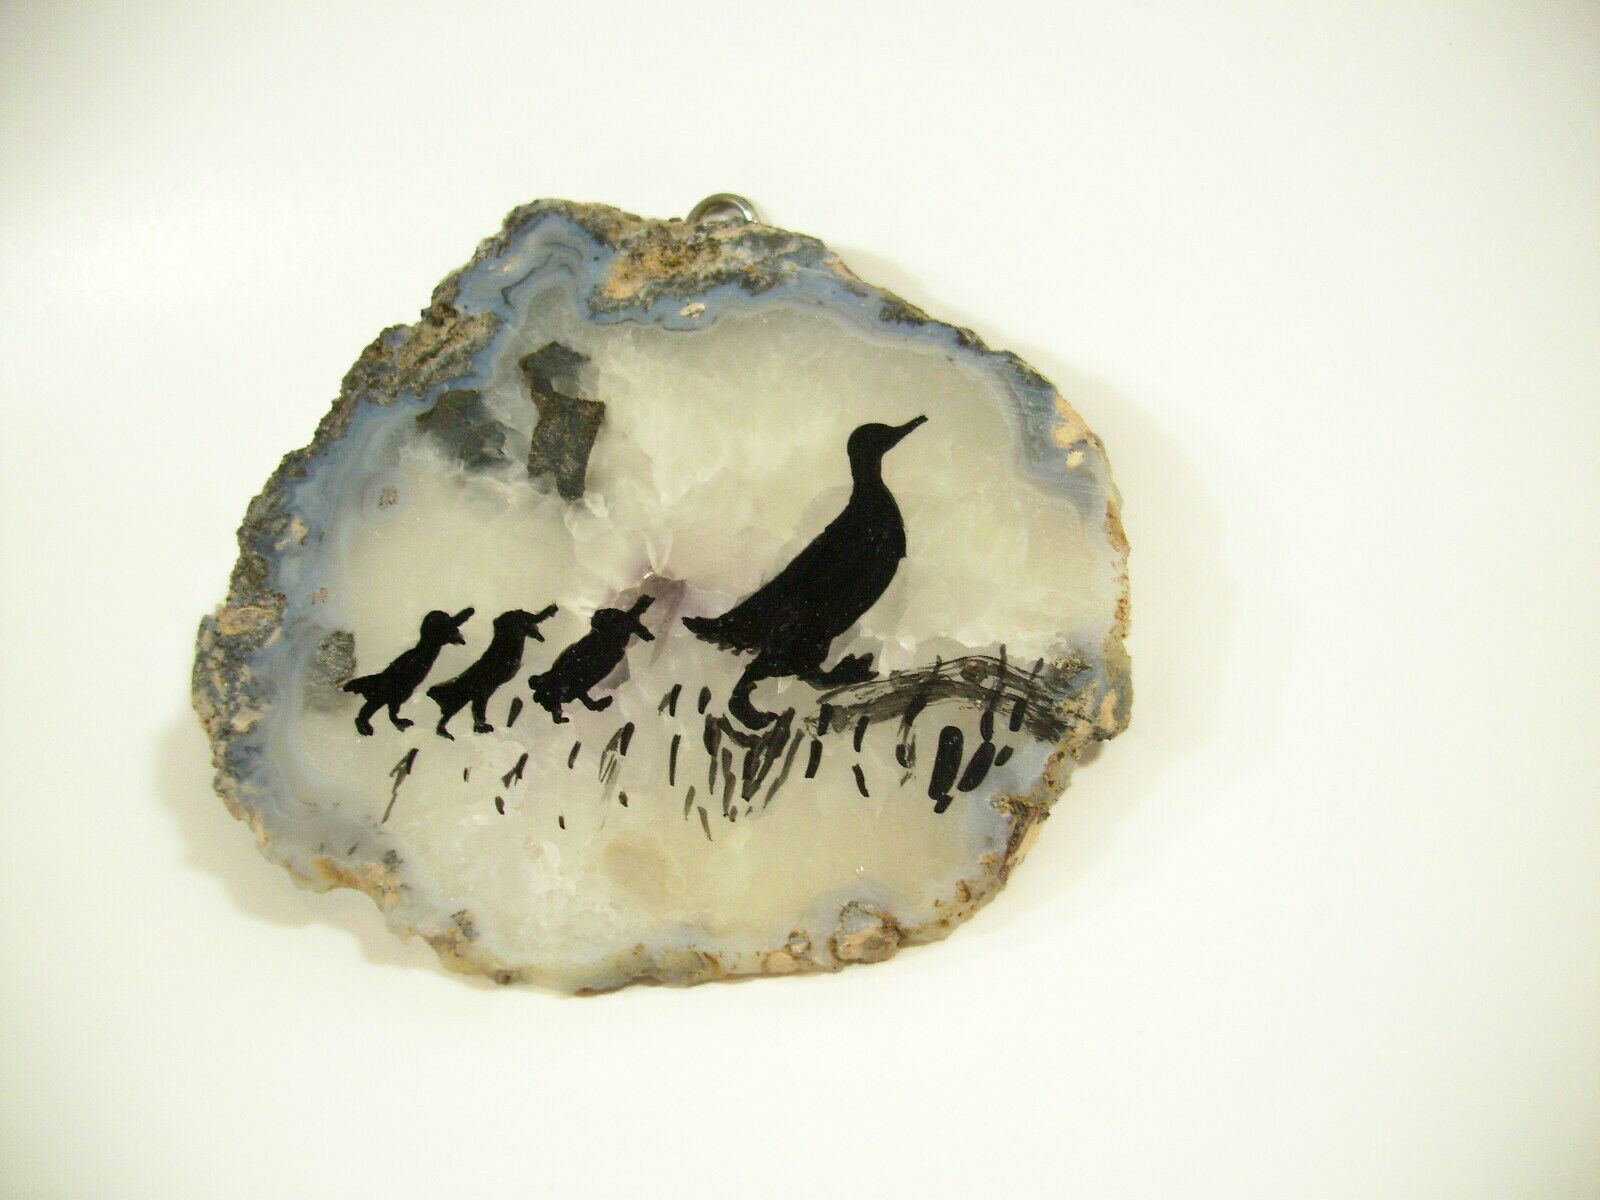 Silhouette Ducks Hand Painted on Geode Stone Slice Folk Art Wall Hanging Plaque image 3